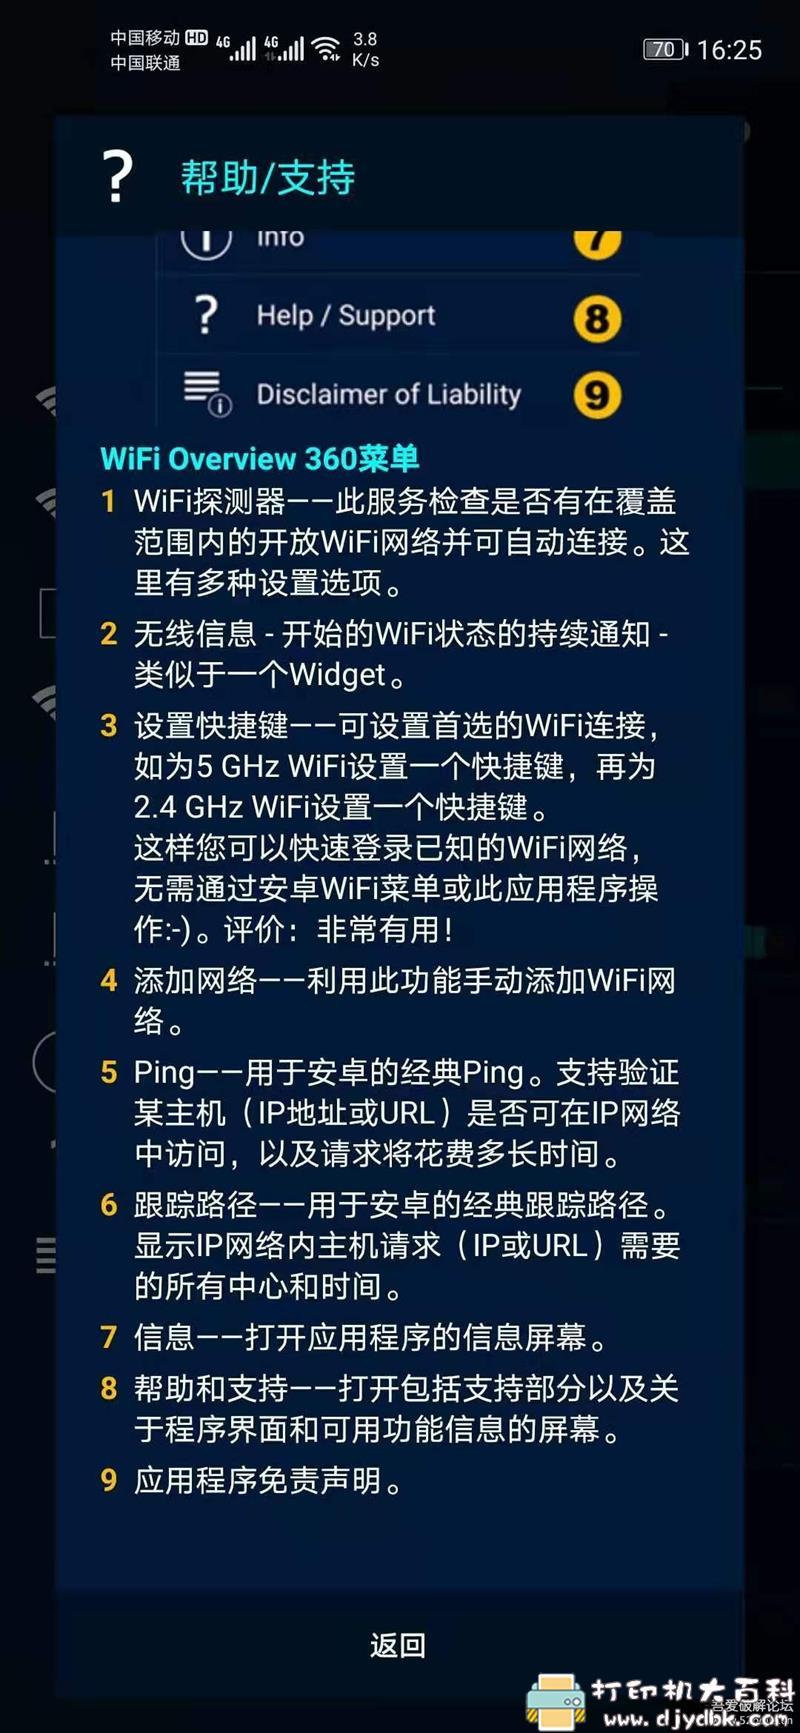 [Android]WIFI概观360专业版4.62.08,附使用教程 配图 No.7